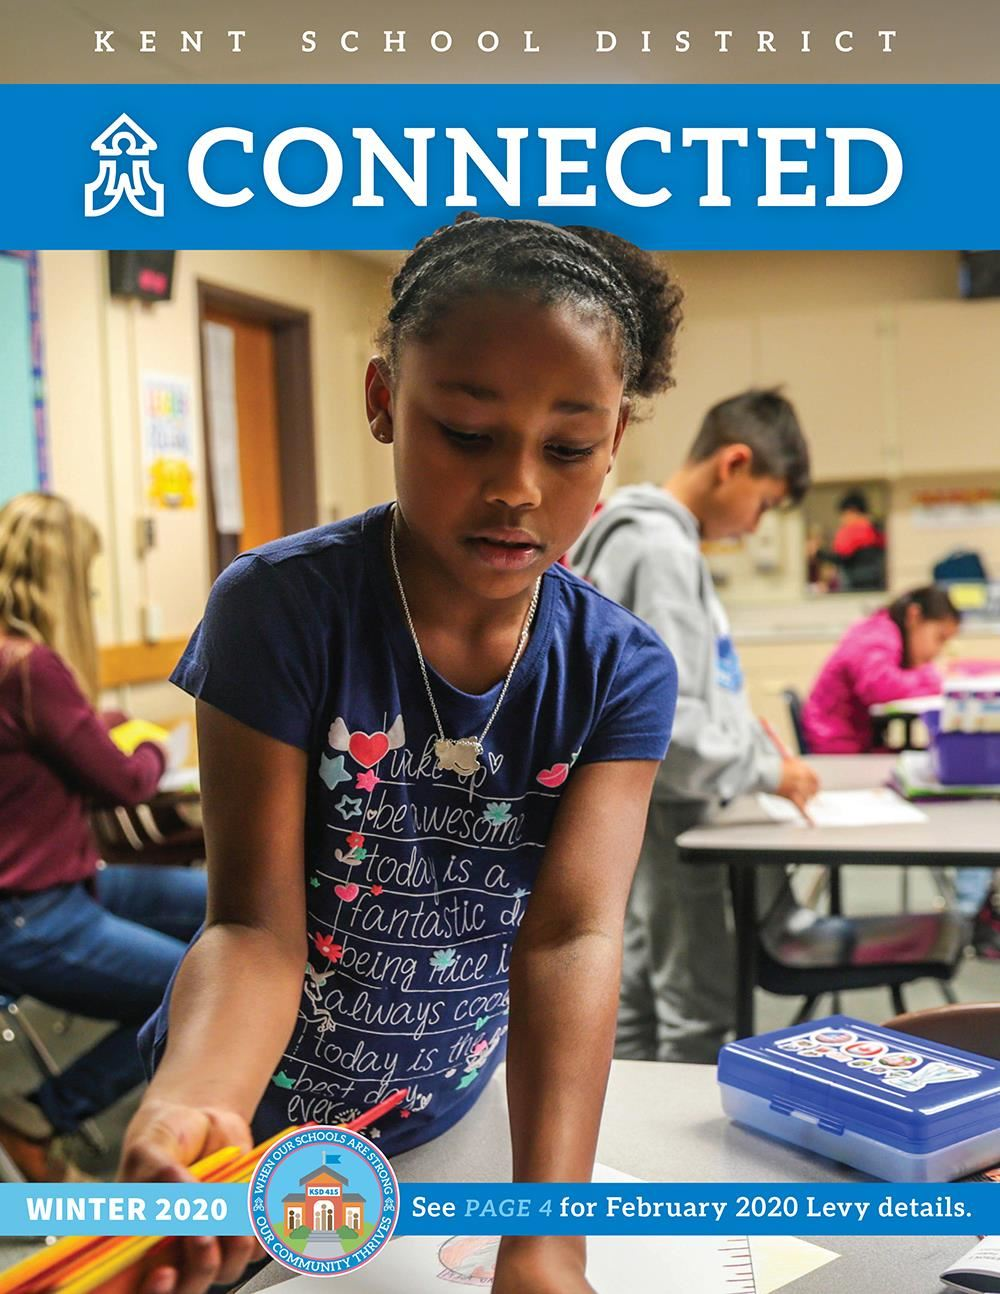 Kent School District Connected Winter 2020 Cover